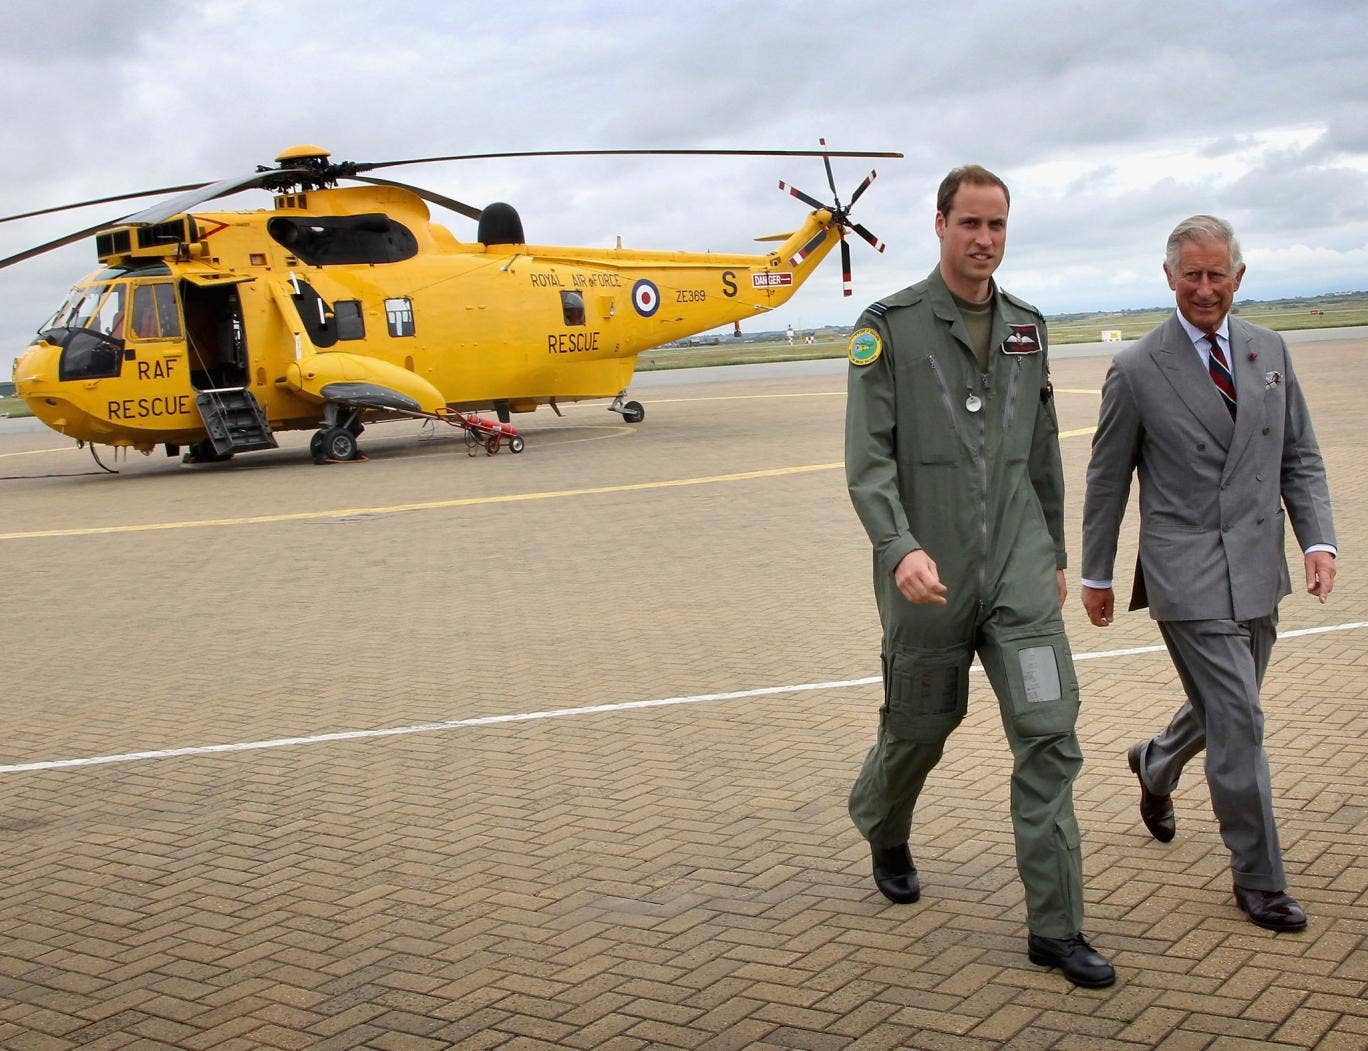 Prince William will leave the RAF